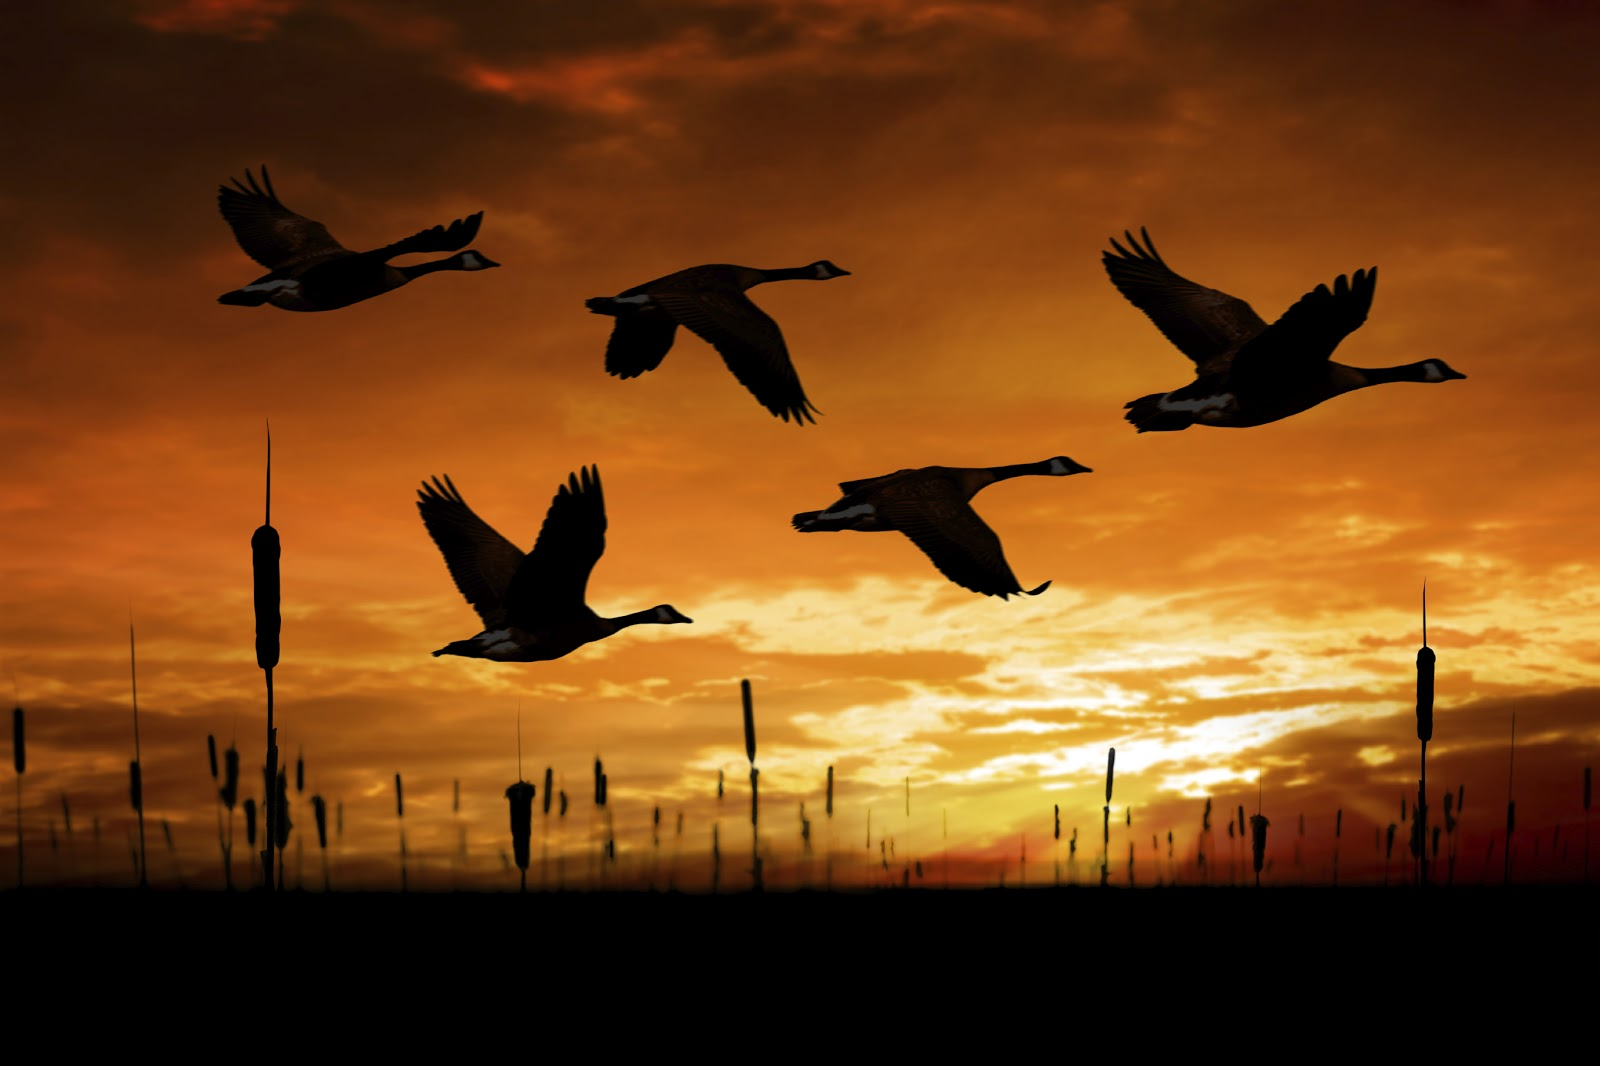 migratory Canada Geese in flight_iStock-000010656644Large.jpg